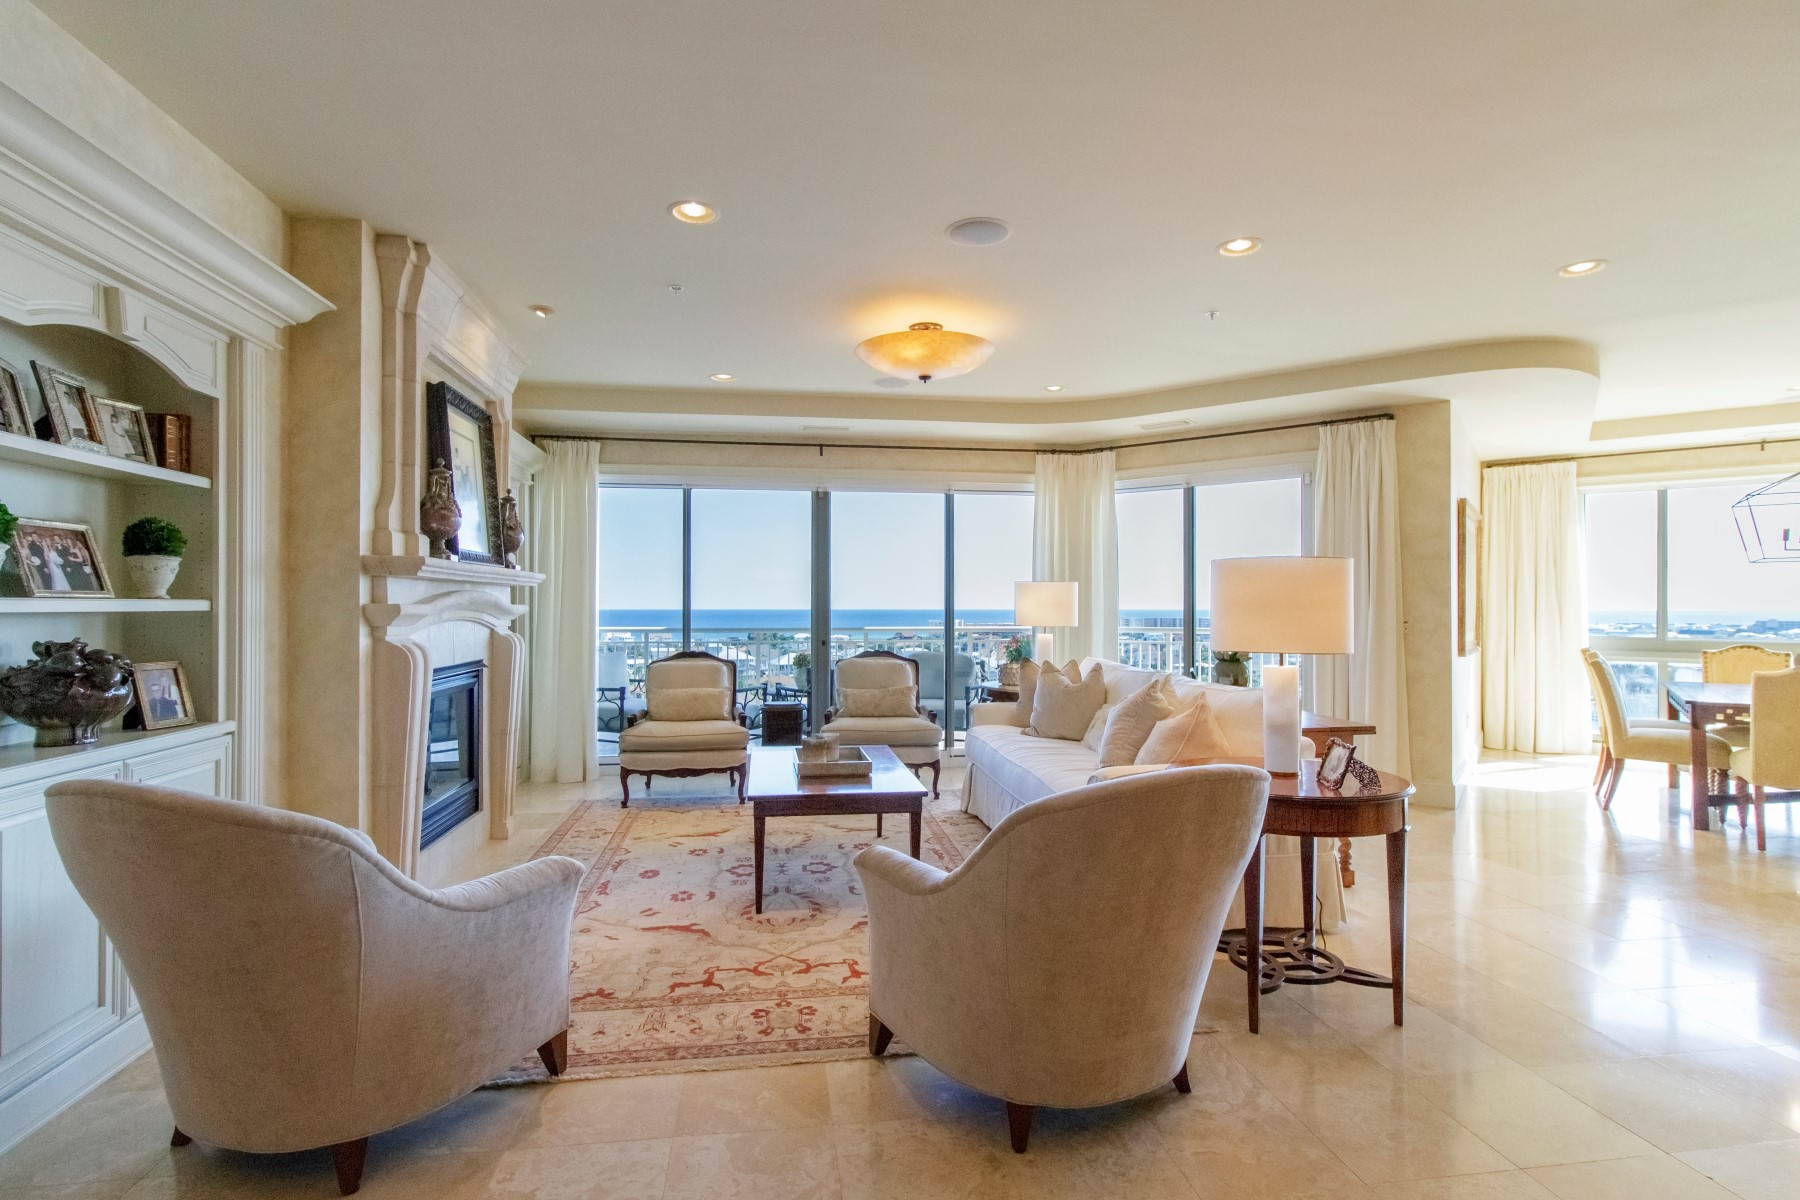 Кондоминиум для того Продажа на PENTHOUSE WITH GULF AND HARBOR VIEWS 662 Harbor Boulevard 910 Destin, Флорида 32541 Соединенные Штаты